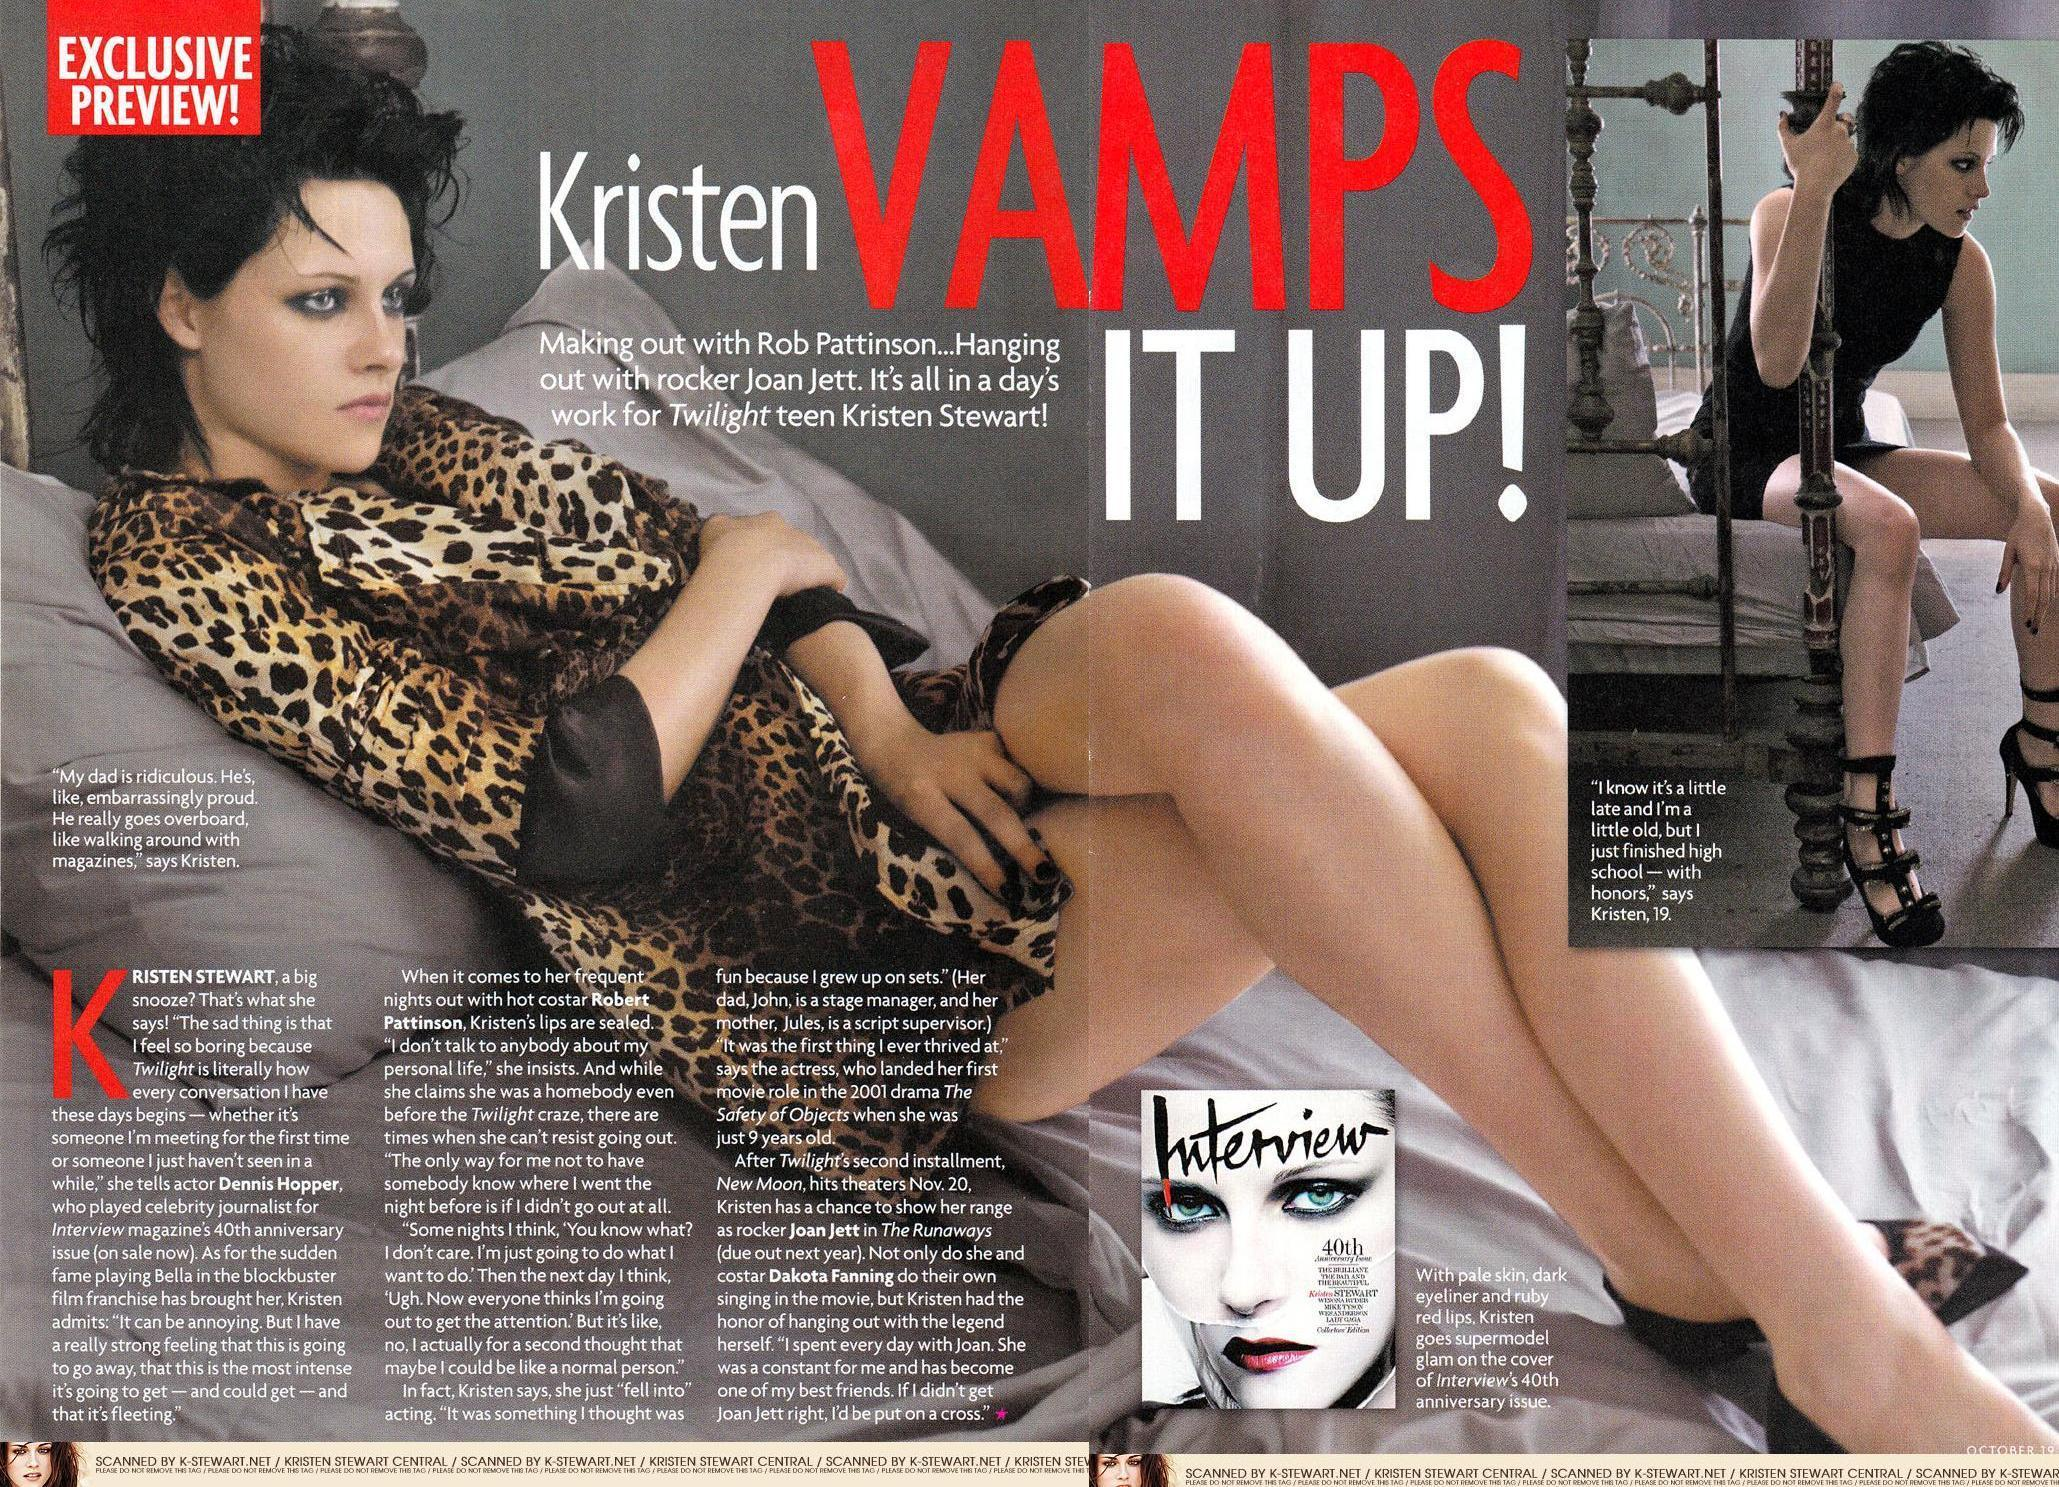 star, sterne Magazine Scan of kristen